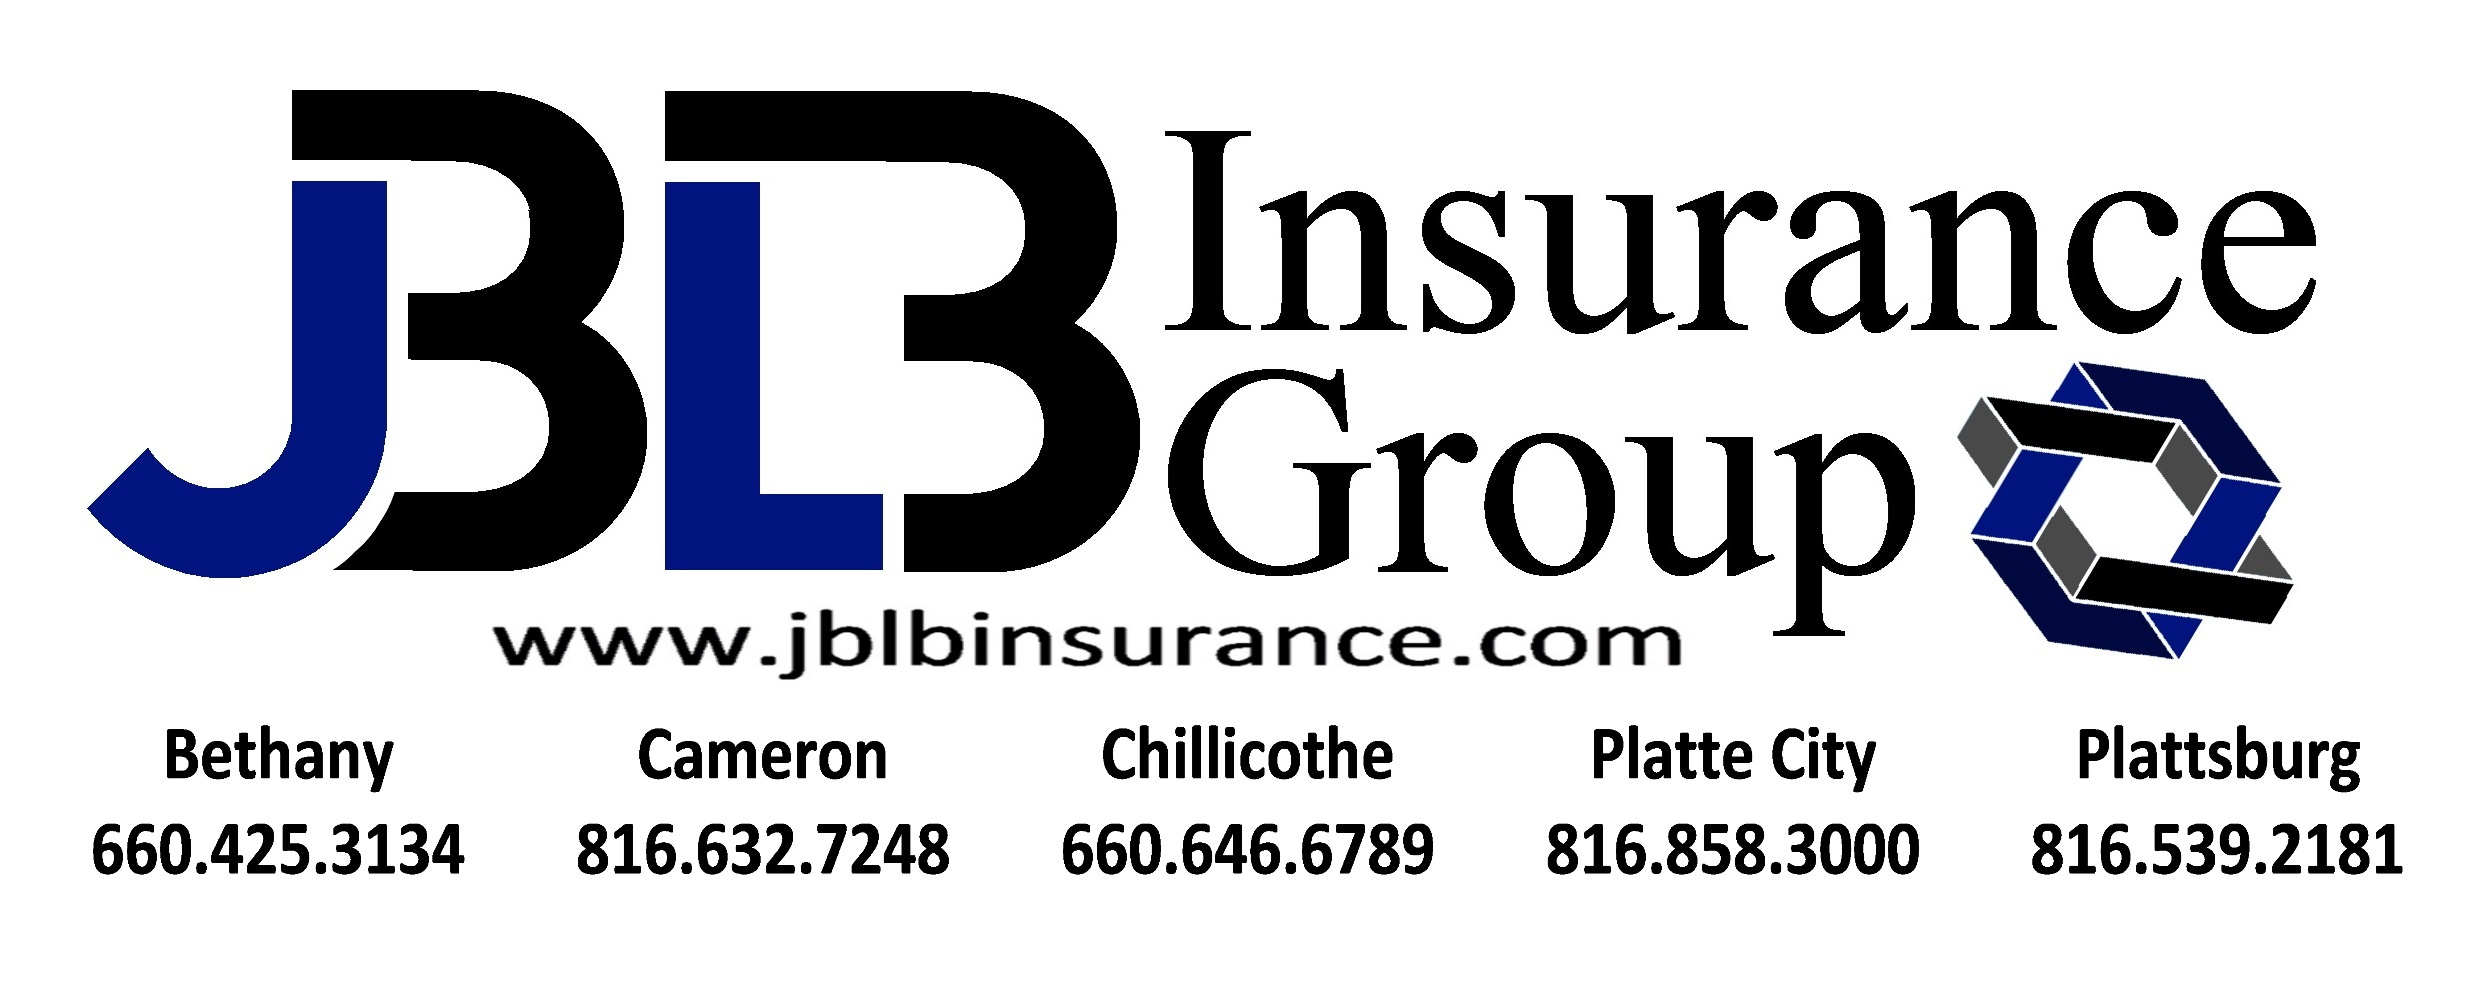 JBLB Insurance Group Locations wsite